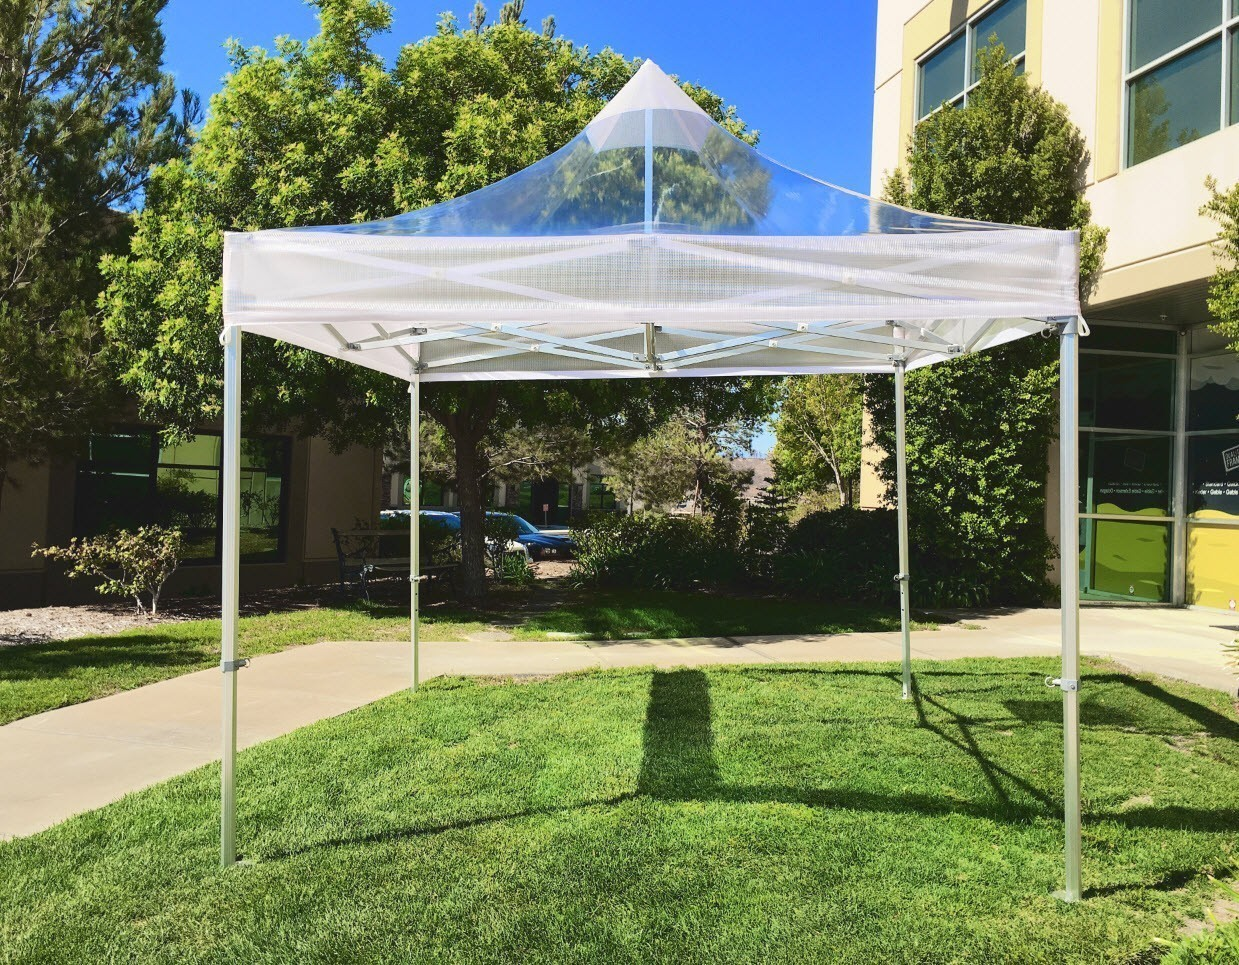 10×10 Commercial Clear Popup Tent : pop ip tent - memphite.com